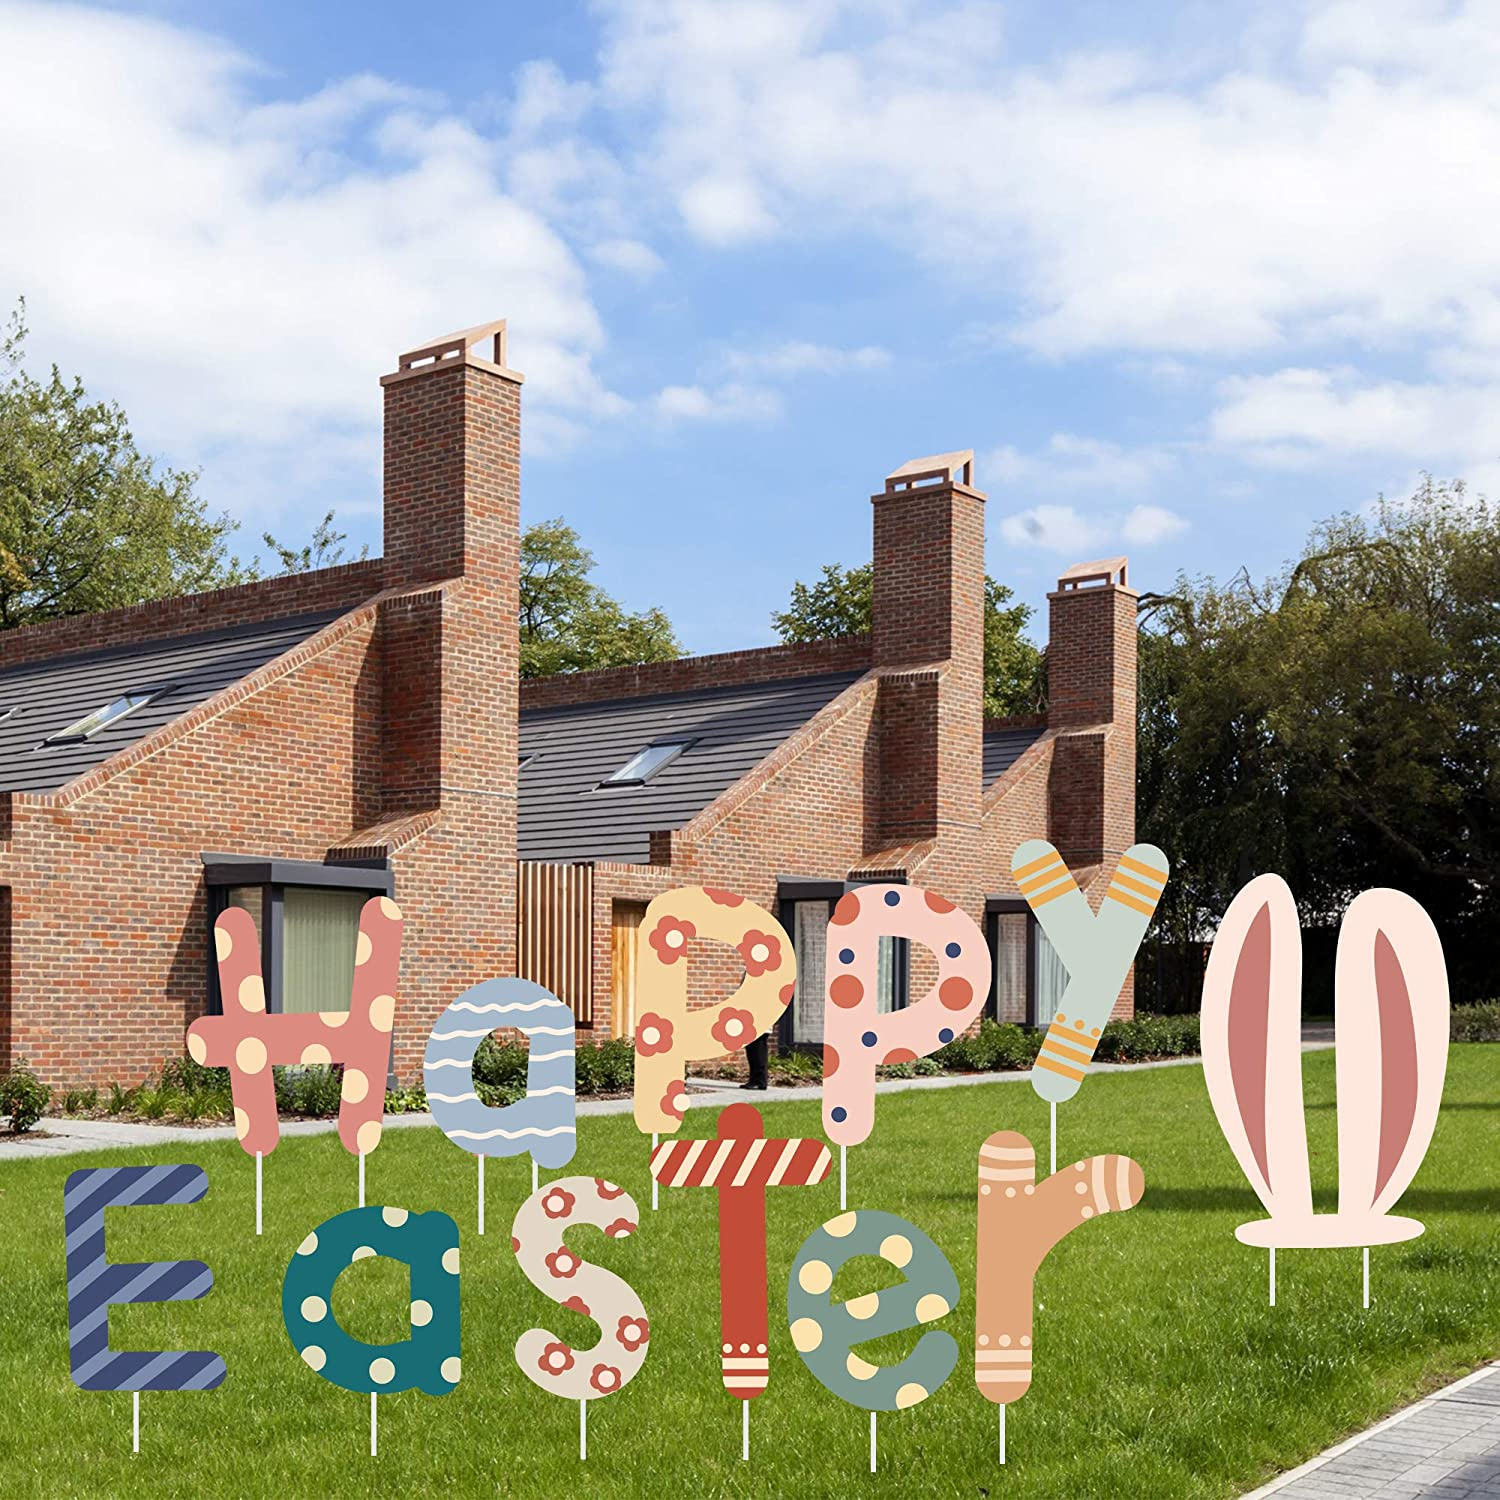 AuLinx Easter Yard Signs Decorations Outdoor Lawn Decorations with Stakes - Funny Bunny and Egg Corrugated Yard Signs Decor for Easter Hunt Game, Party Supplies Decor Ornaments, Easter Props(Easter-2)